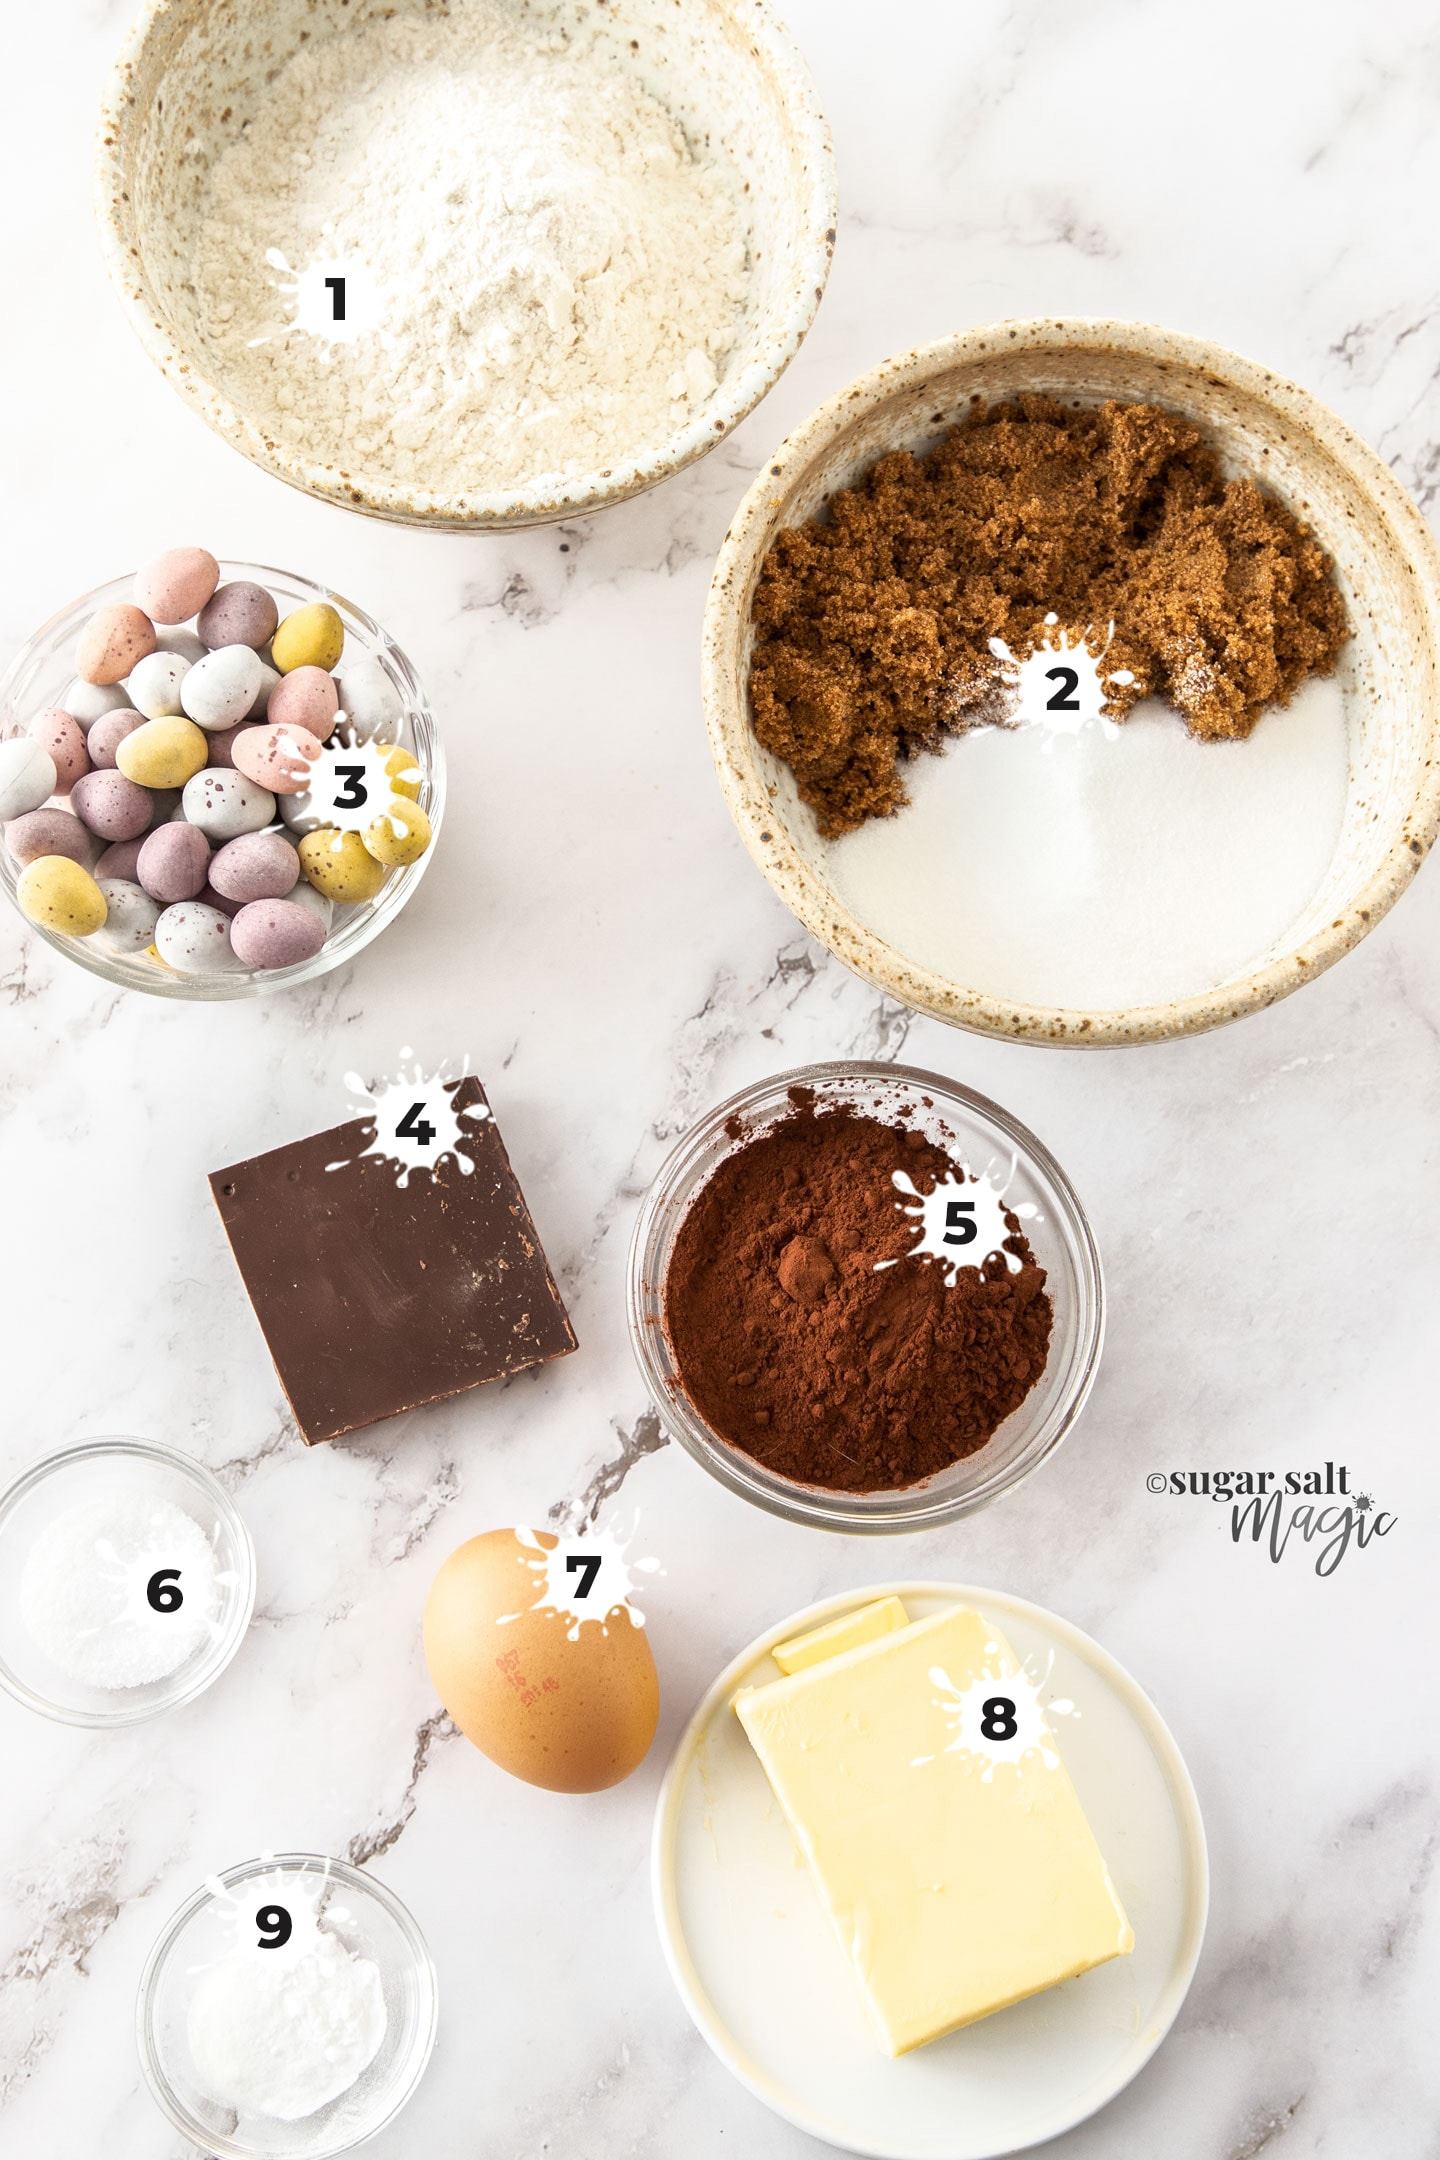 Ingredients for chocolate easter egg cookies.